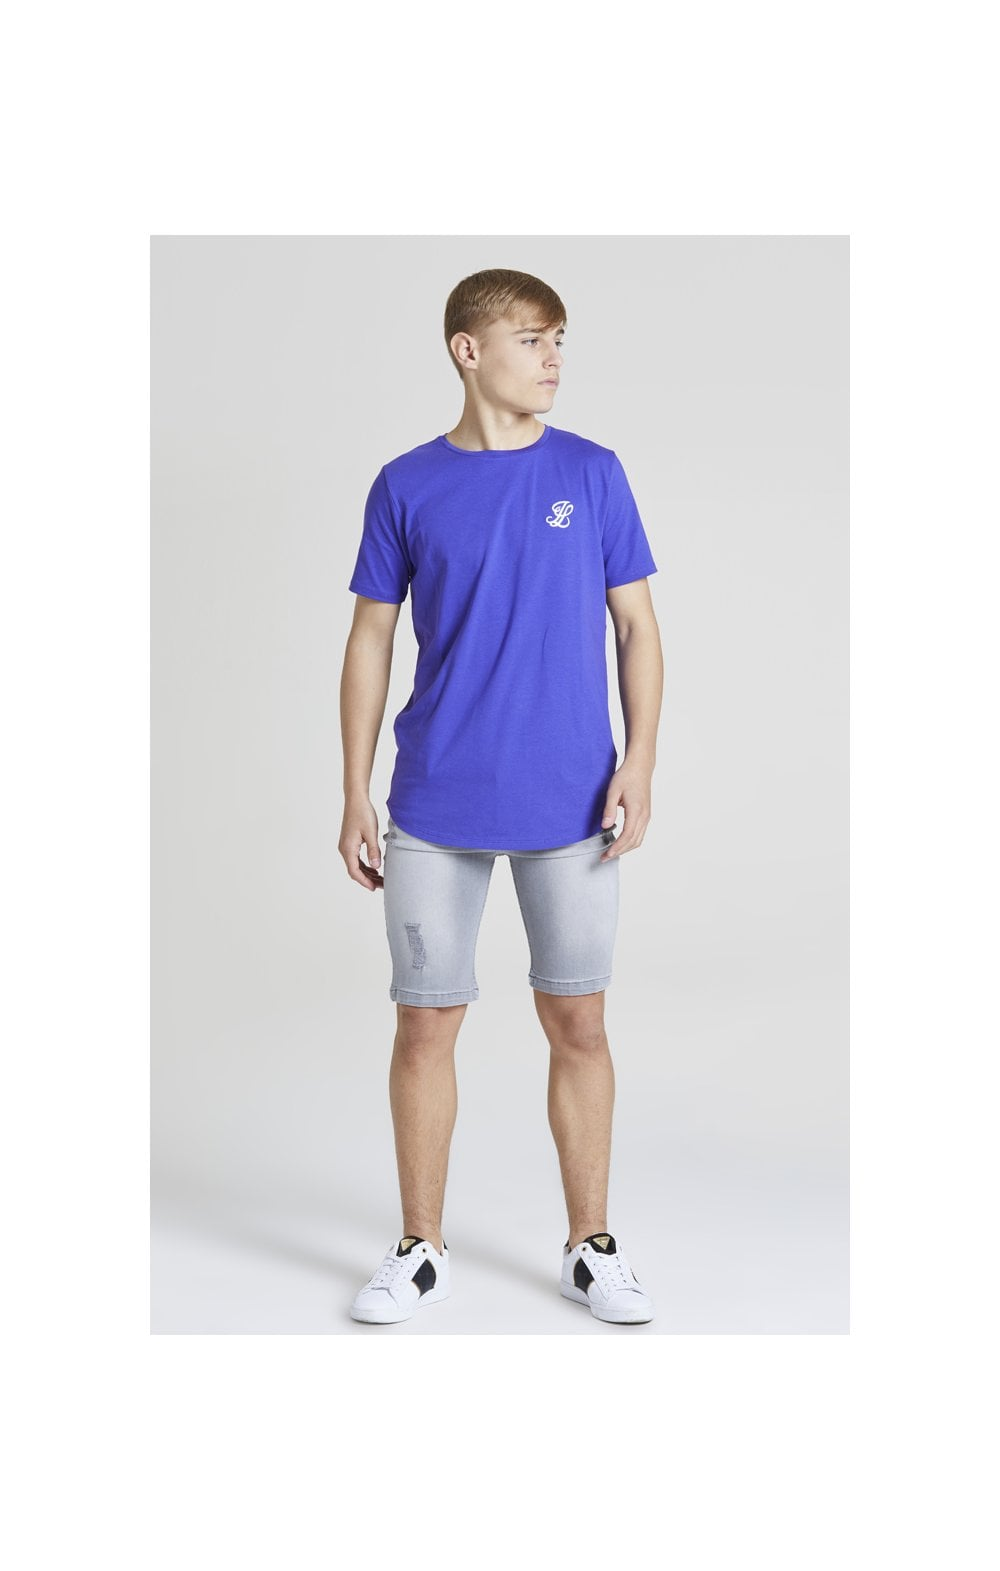 Illusive London Core Tee - Purple (1)